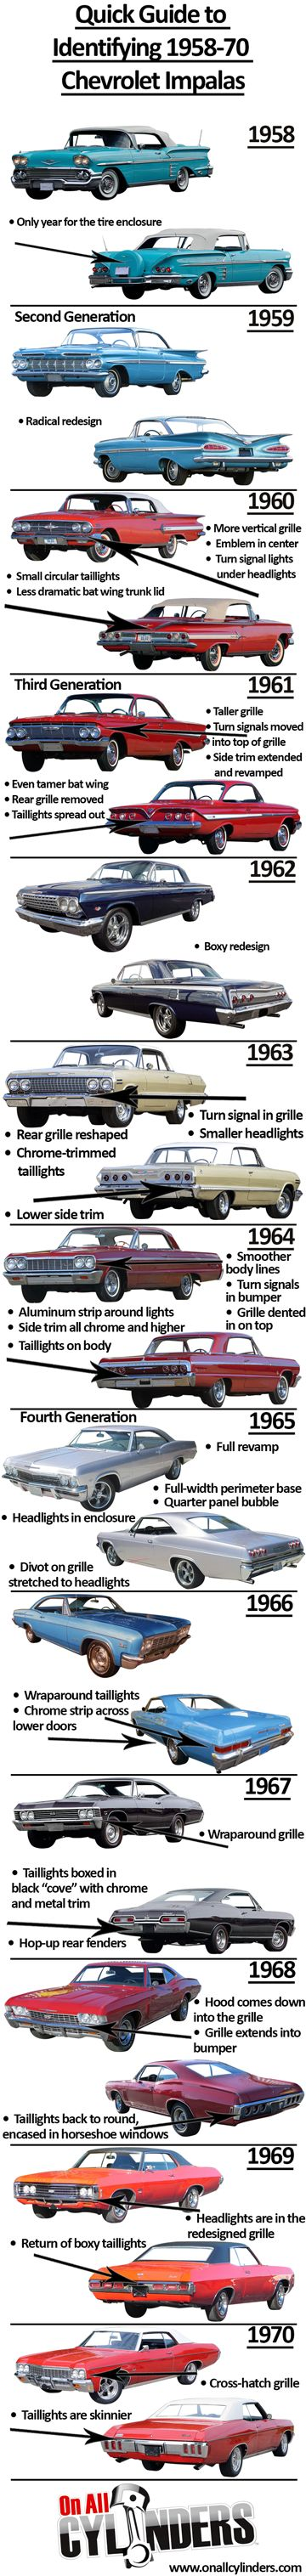 1955 dodge royal lancer convertible cream black fvr cars - Vehicle Identification Chart For Chevy Impalas 1958 1970